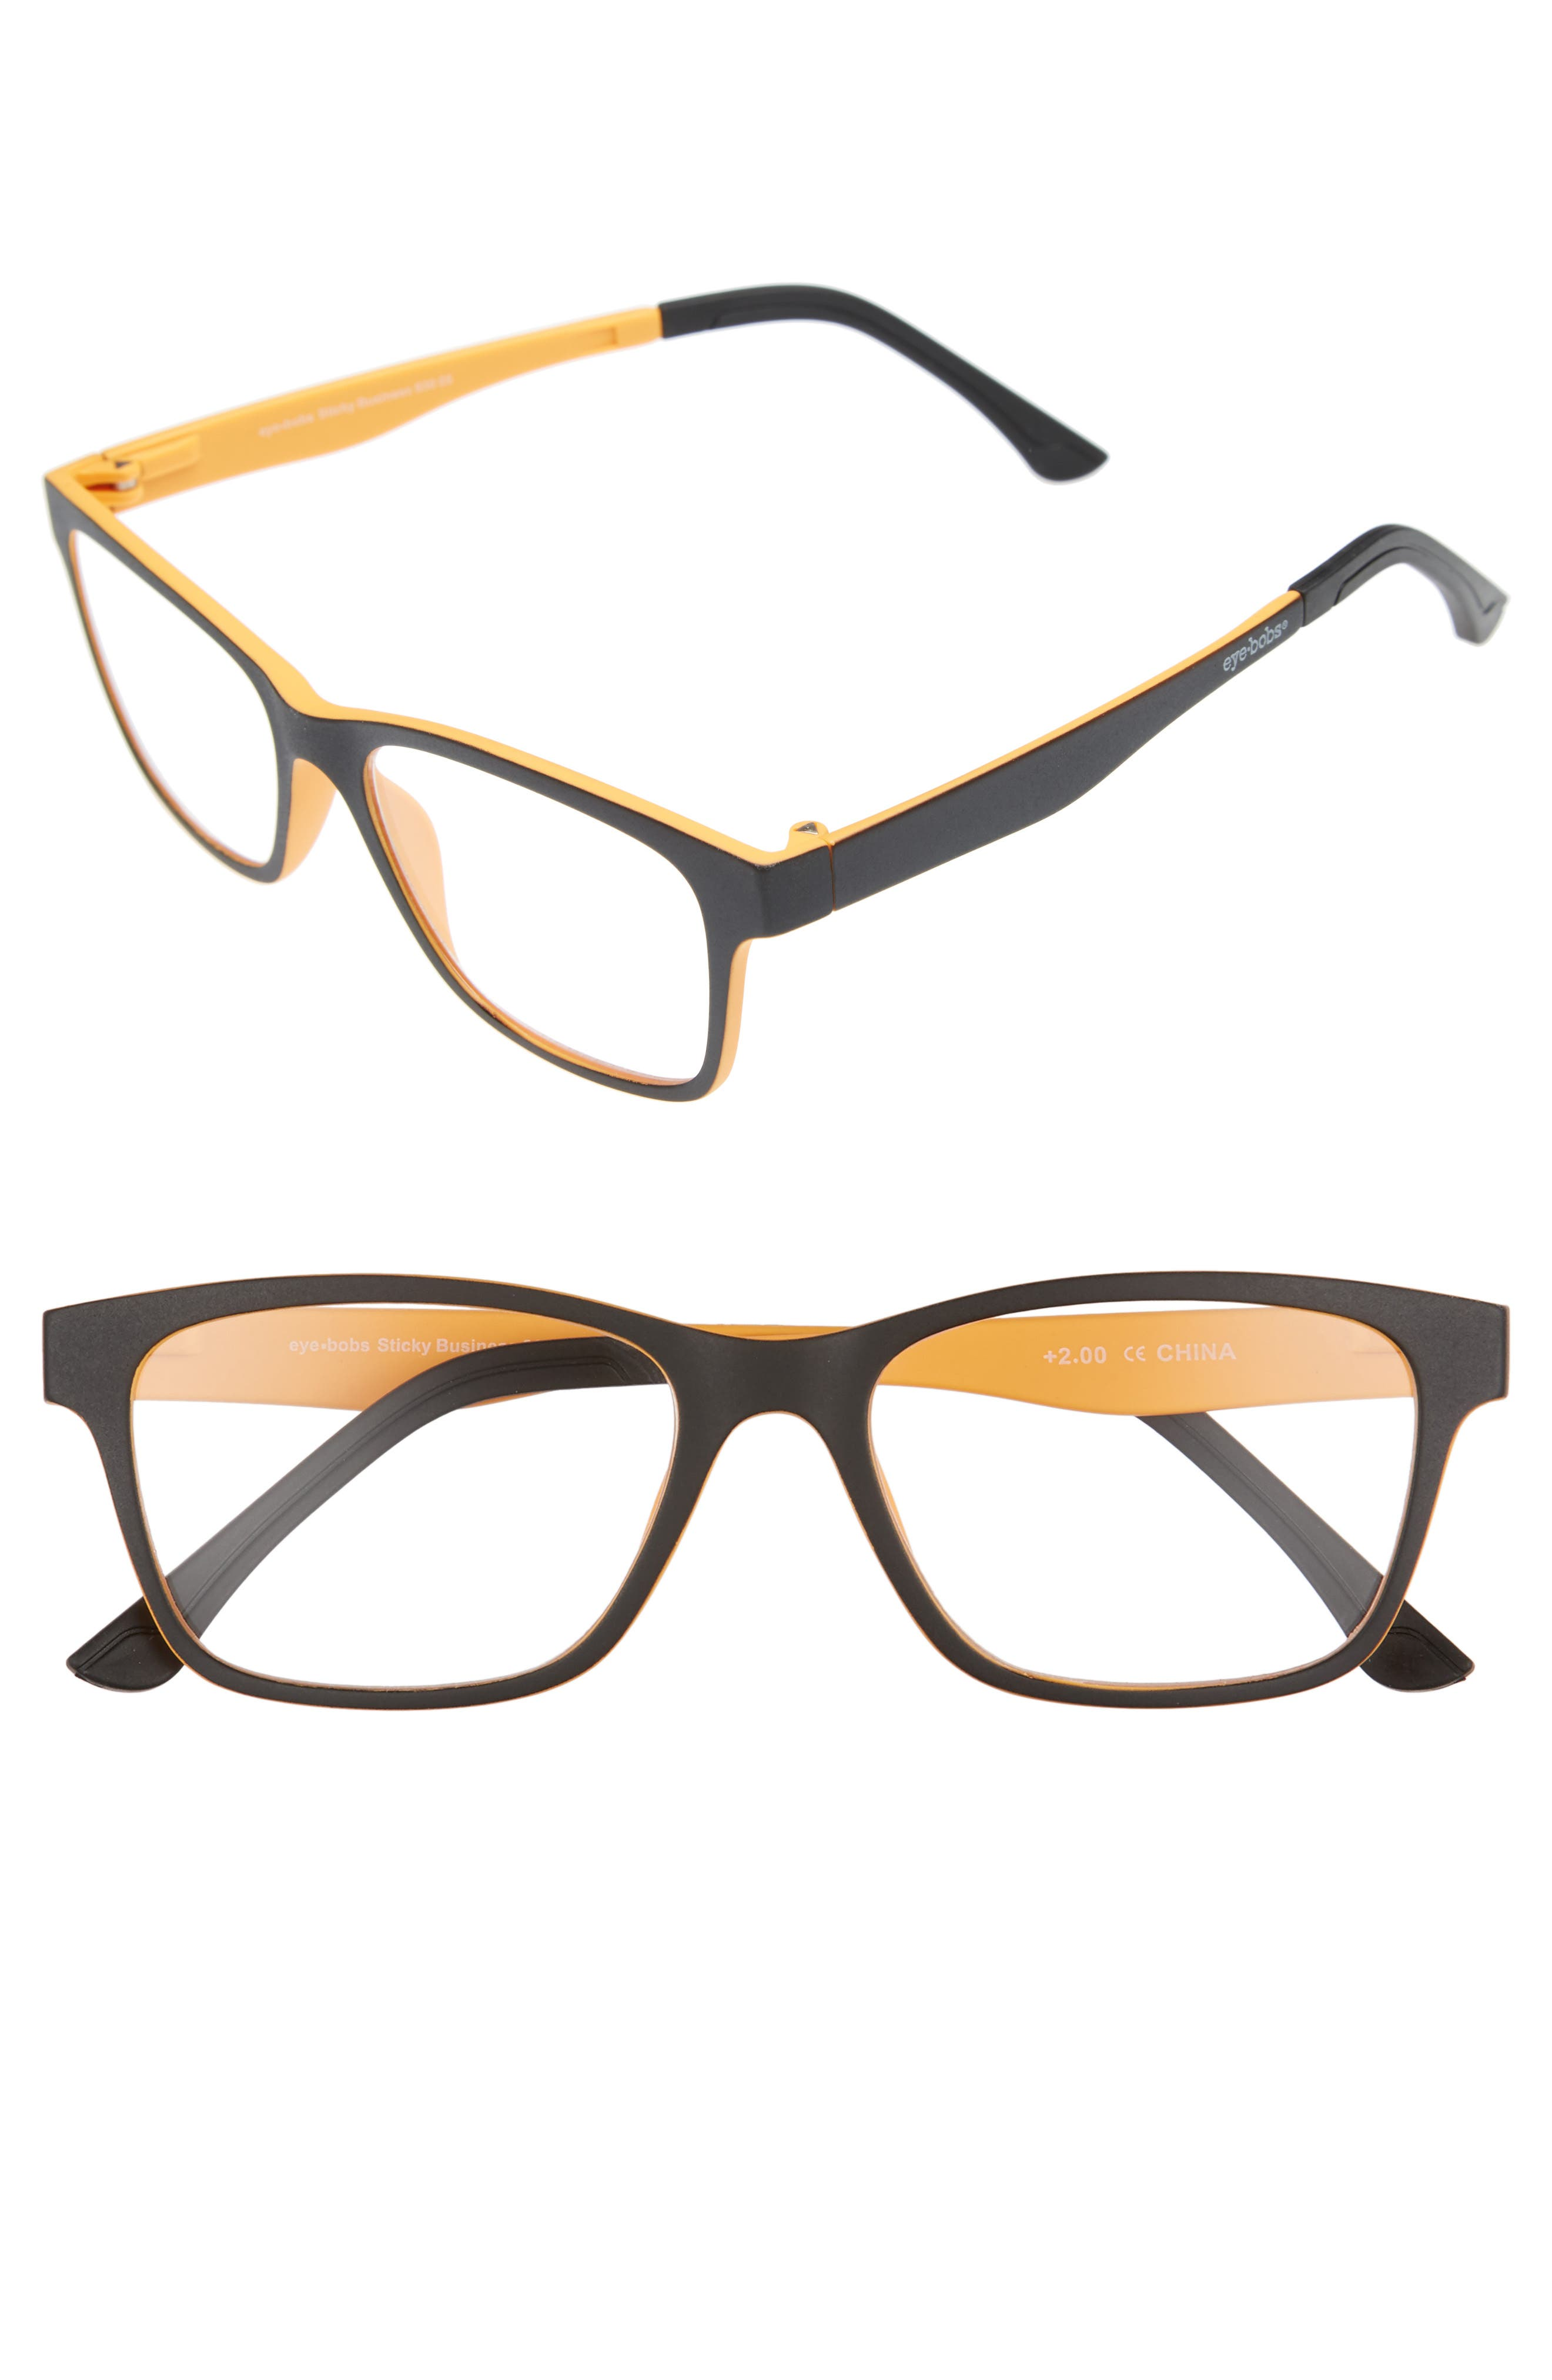 Sticky Business 52mm Reading Glasses with Polarized Sunglass Clip,                             Main thumbnail 1, color,                             BLACK WITH YELLOW